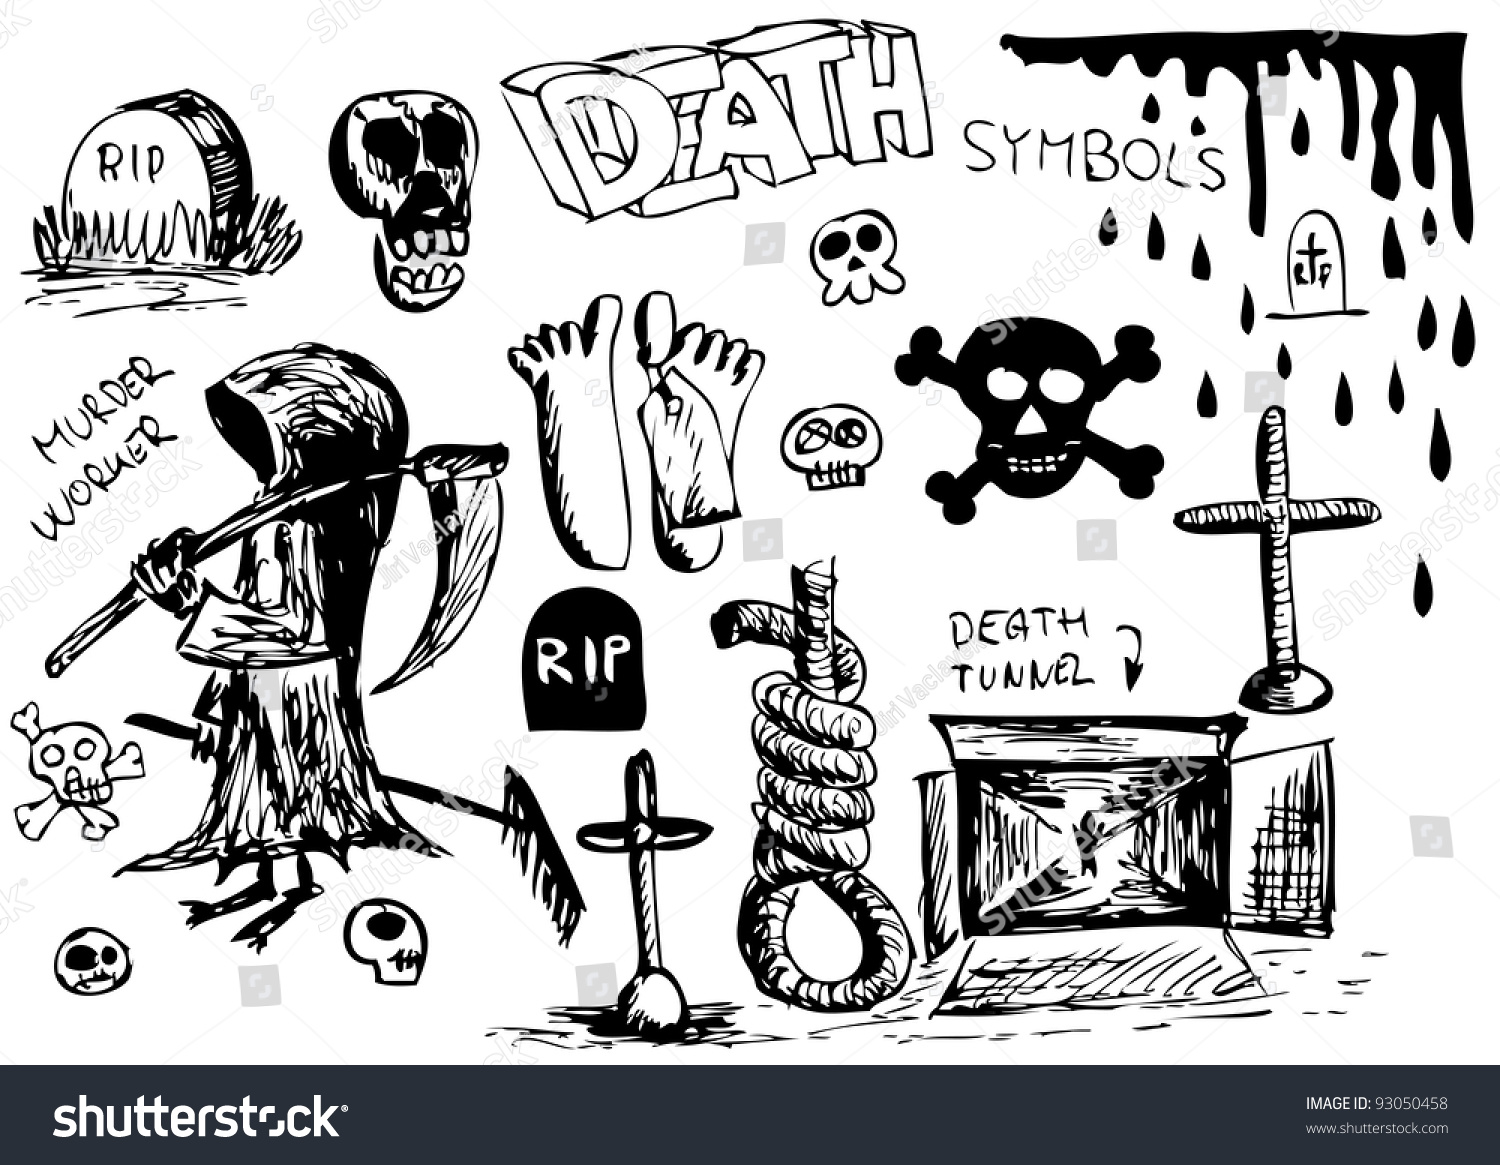 Doherty Greg Death And Afterlife Symbolism